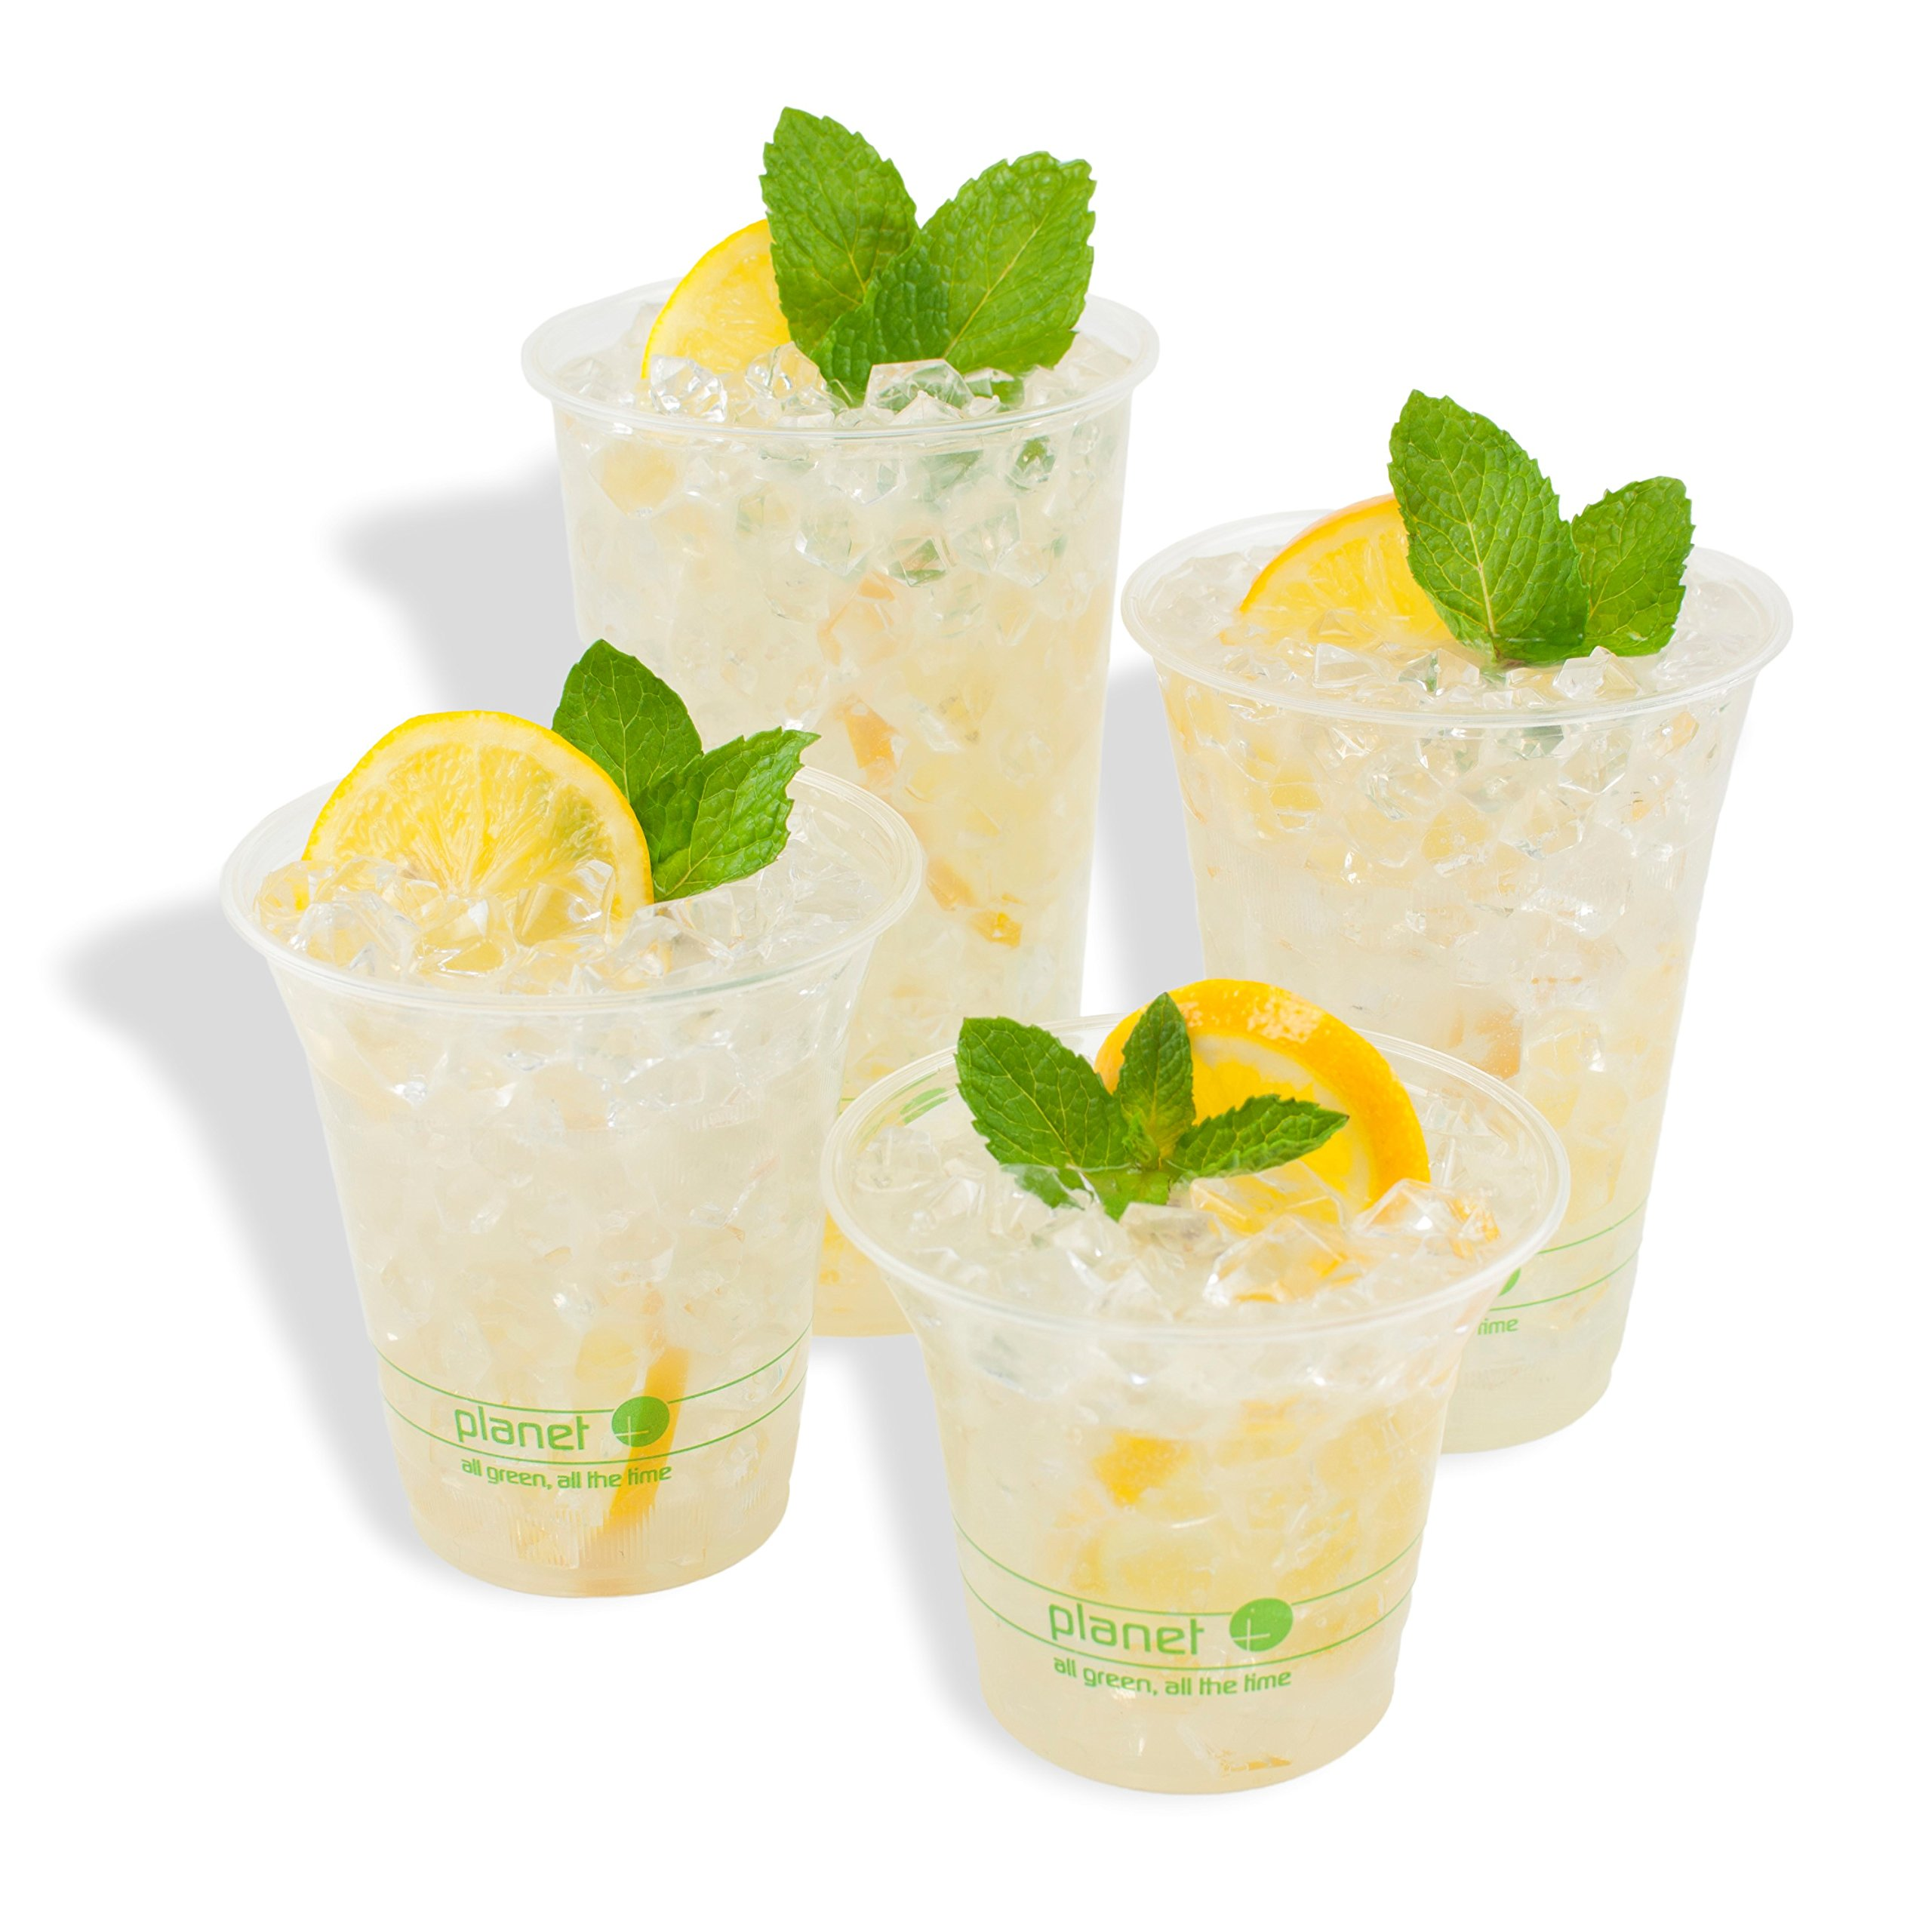 Planet + 100% Compostable PLA Clear Cold Cup, 16-Ounce, 1000-Count Case by Stalkmarket (Image #2)